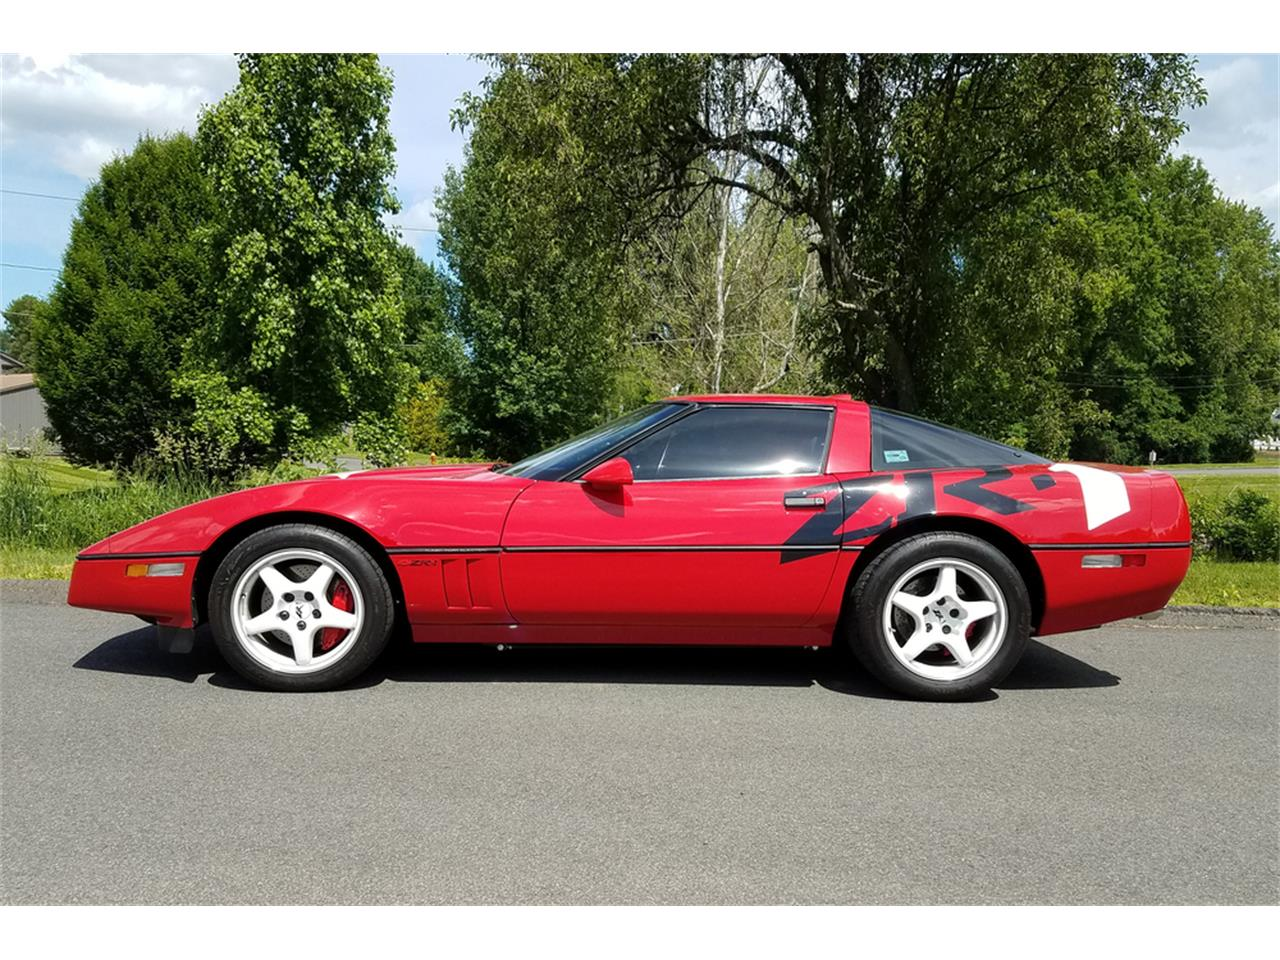 Large Picture of '90 Corvette located in Connecticut Auction Vehicle Offered by Barrett-Jackson - QBC3